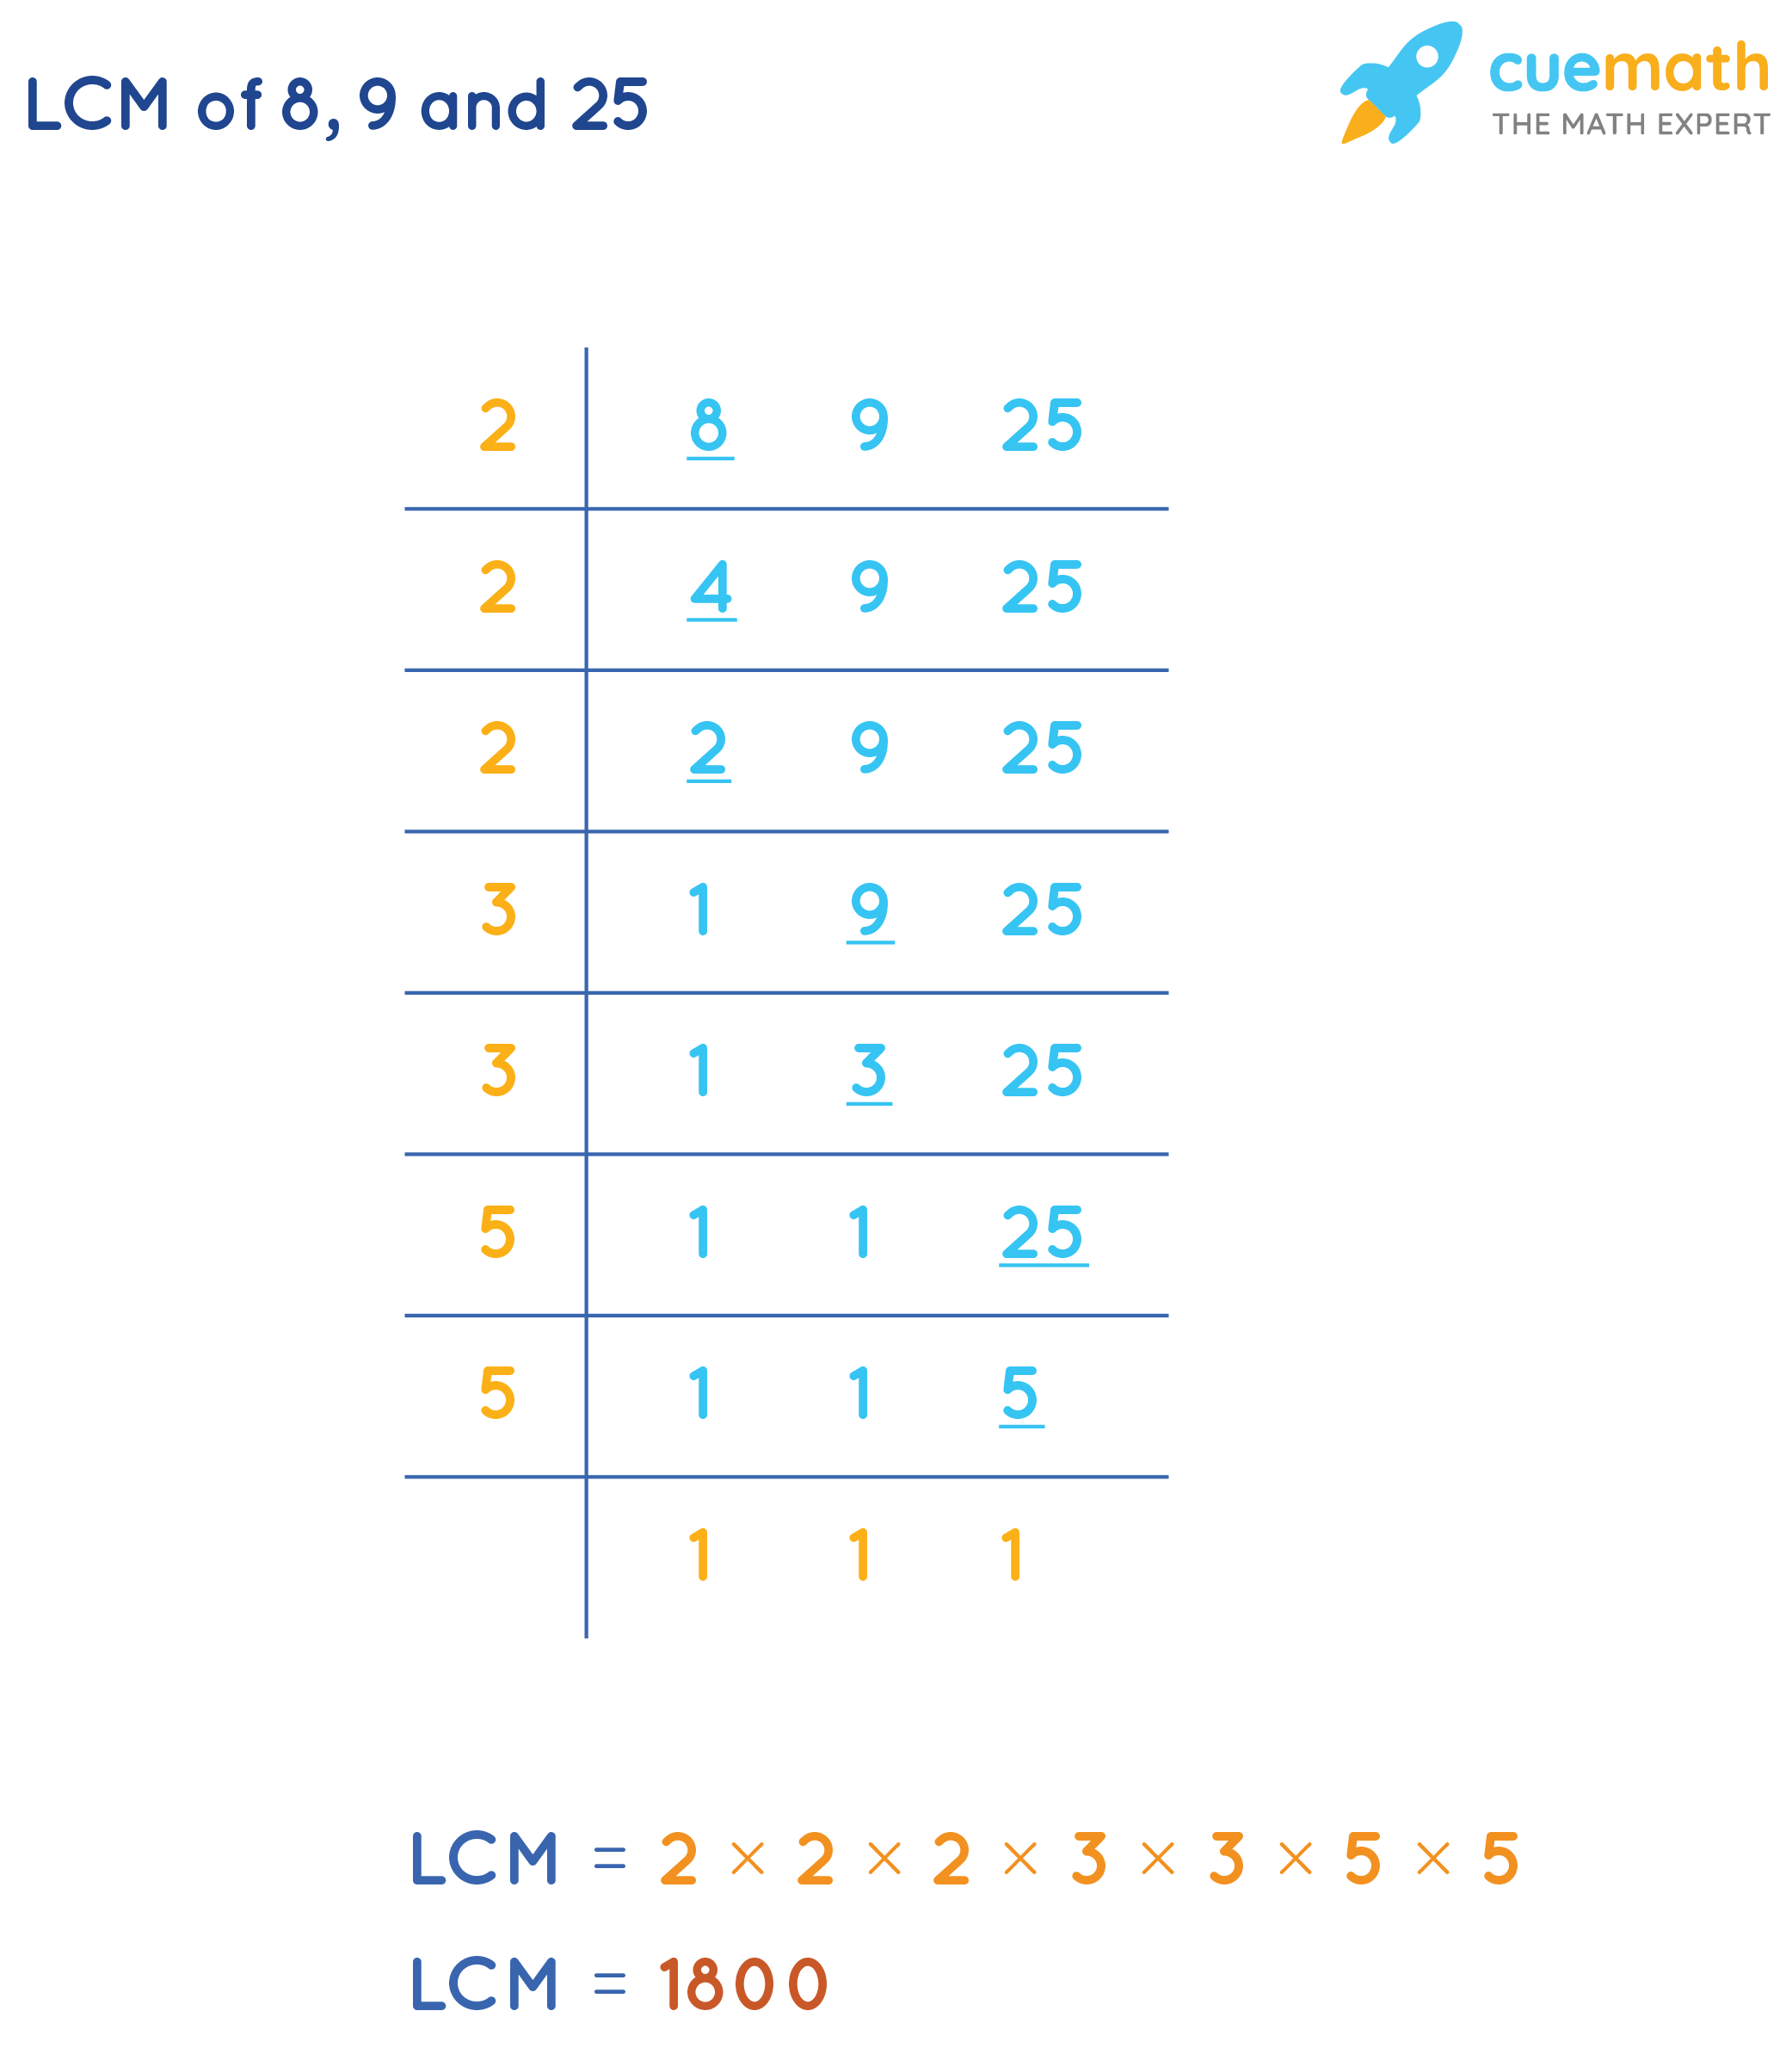 Calculate LCM(8, 9, 25)by Common Division Method